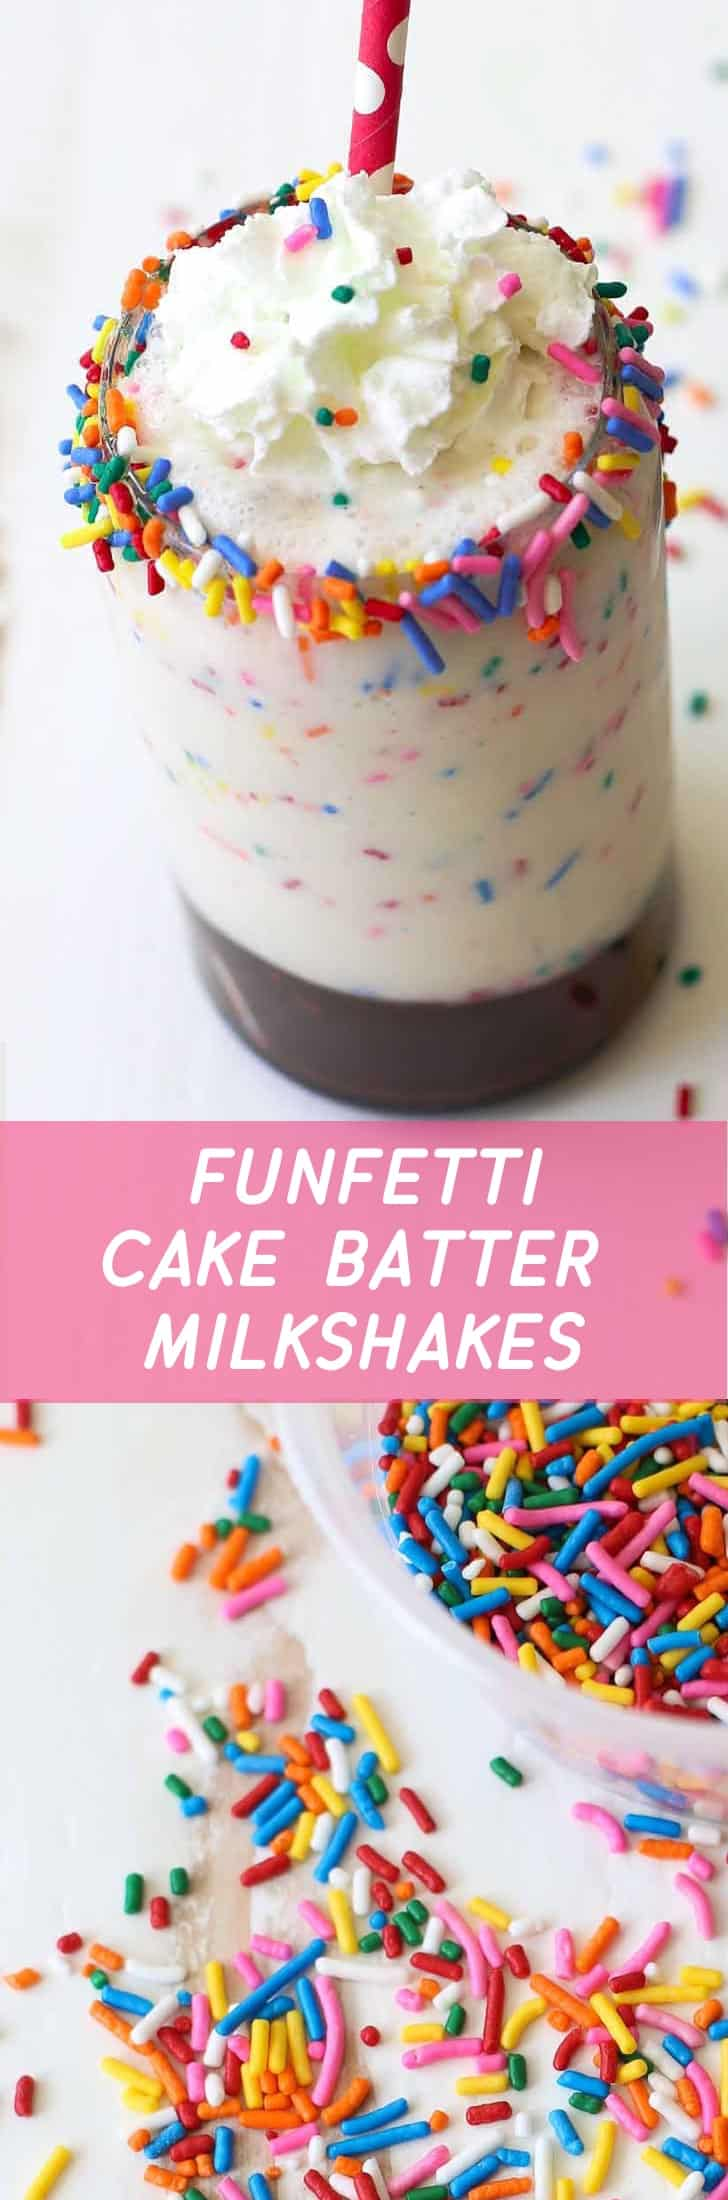 With all the flavor of cake batter, a swirl of hot fudge and loads of sprinkles, these milkshakes are even better than licking the bowl after making a funfetti cake.